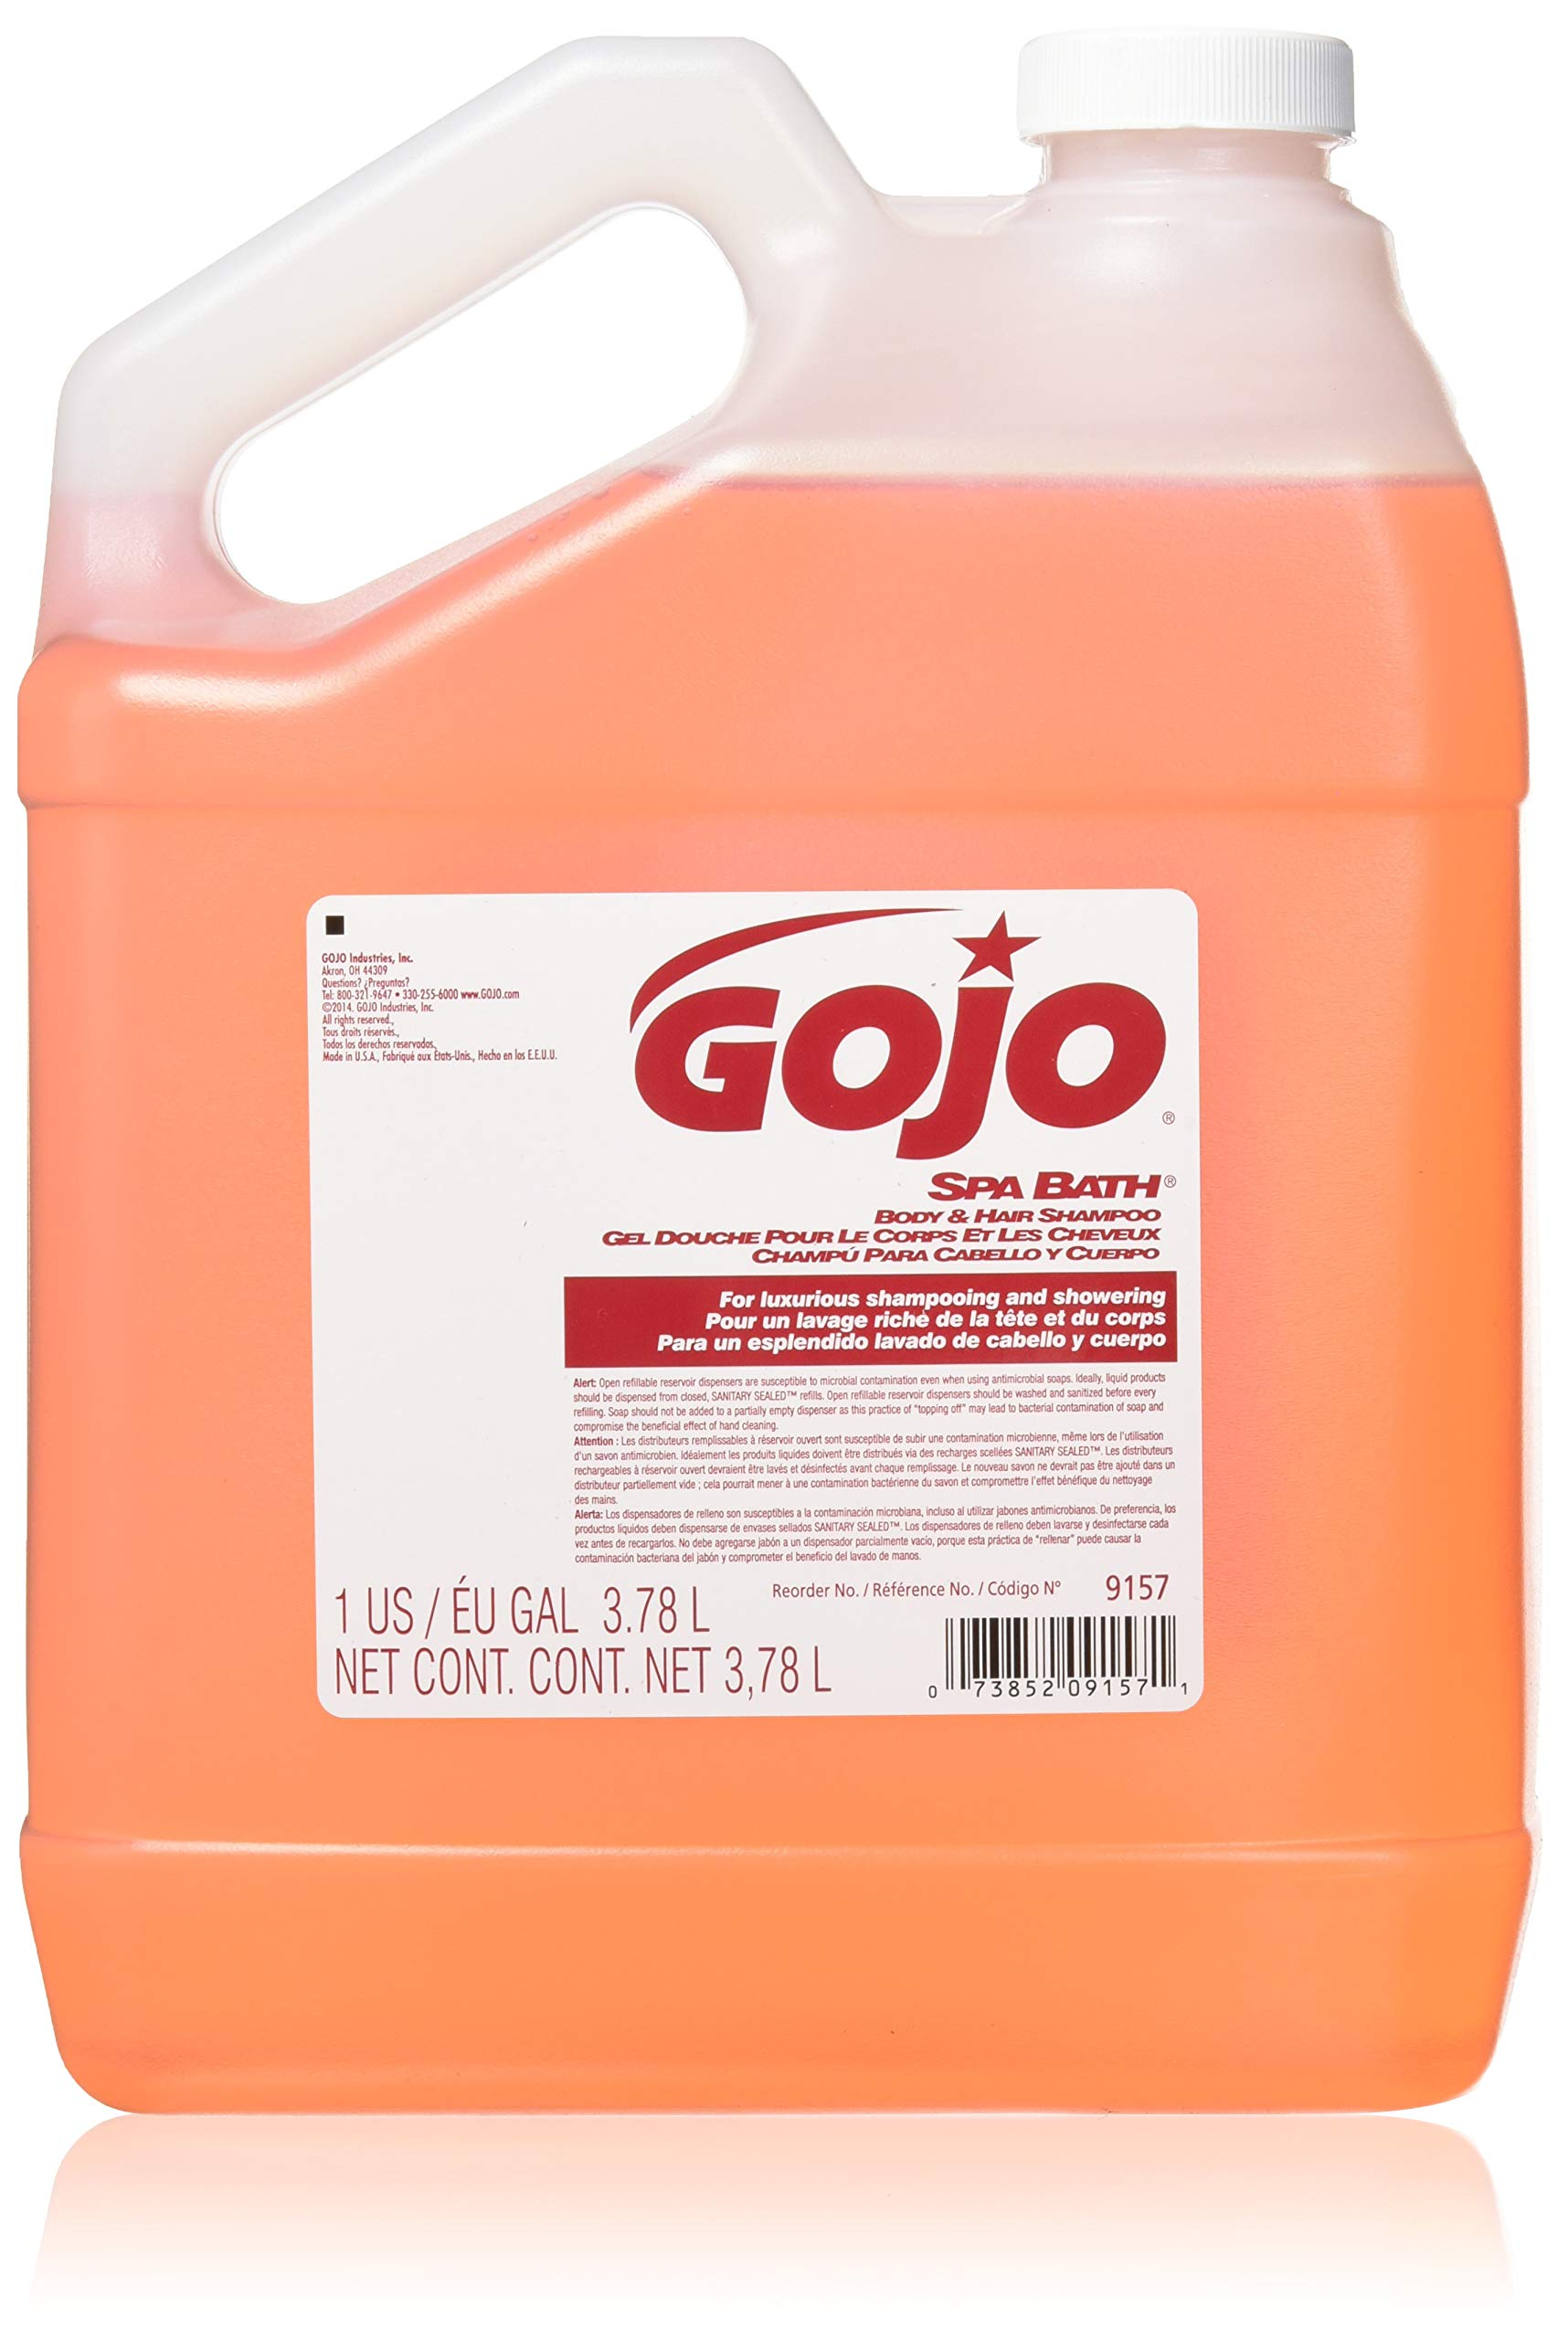 GOJO 1 gal. Citrus, Floral Body and Hair Shampoo